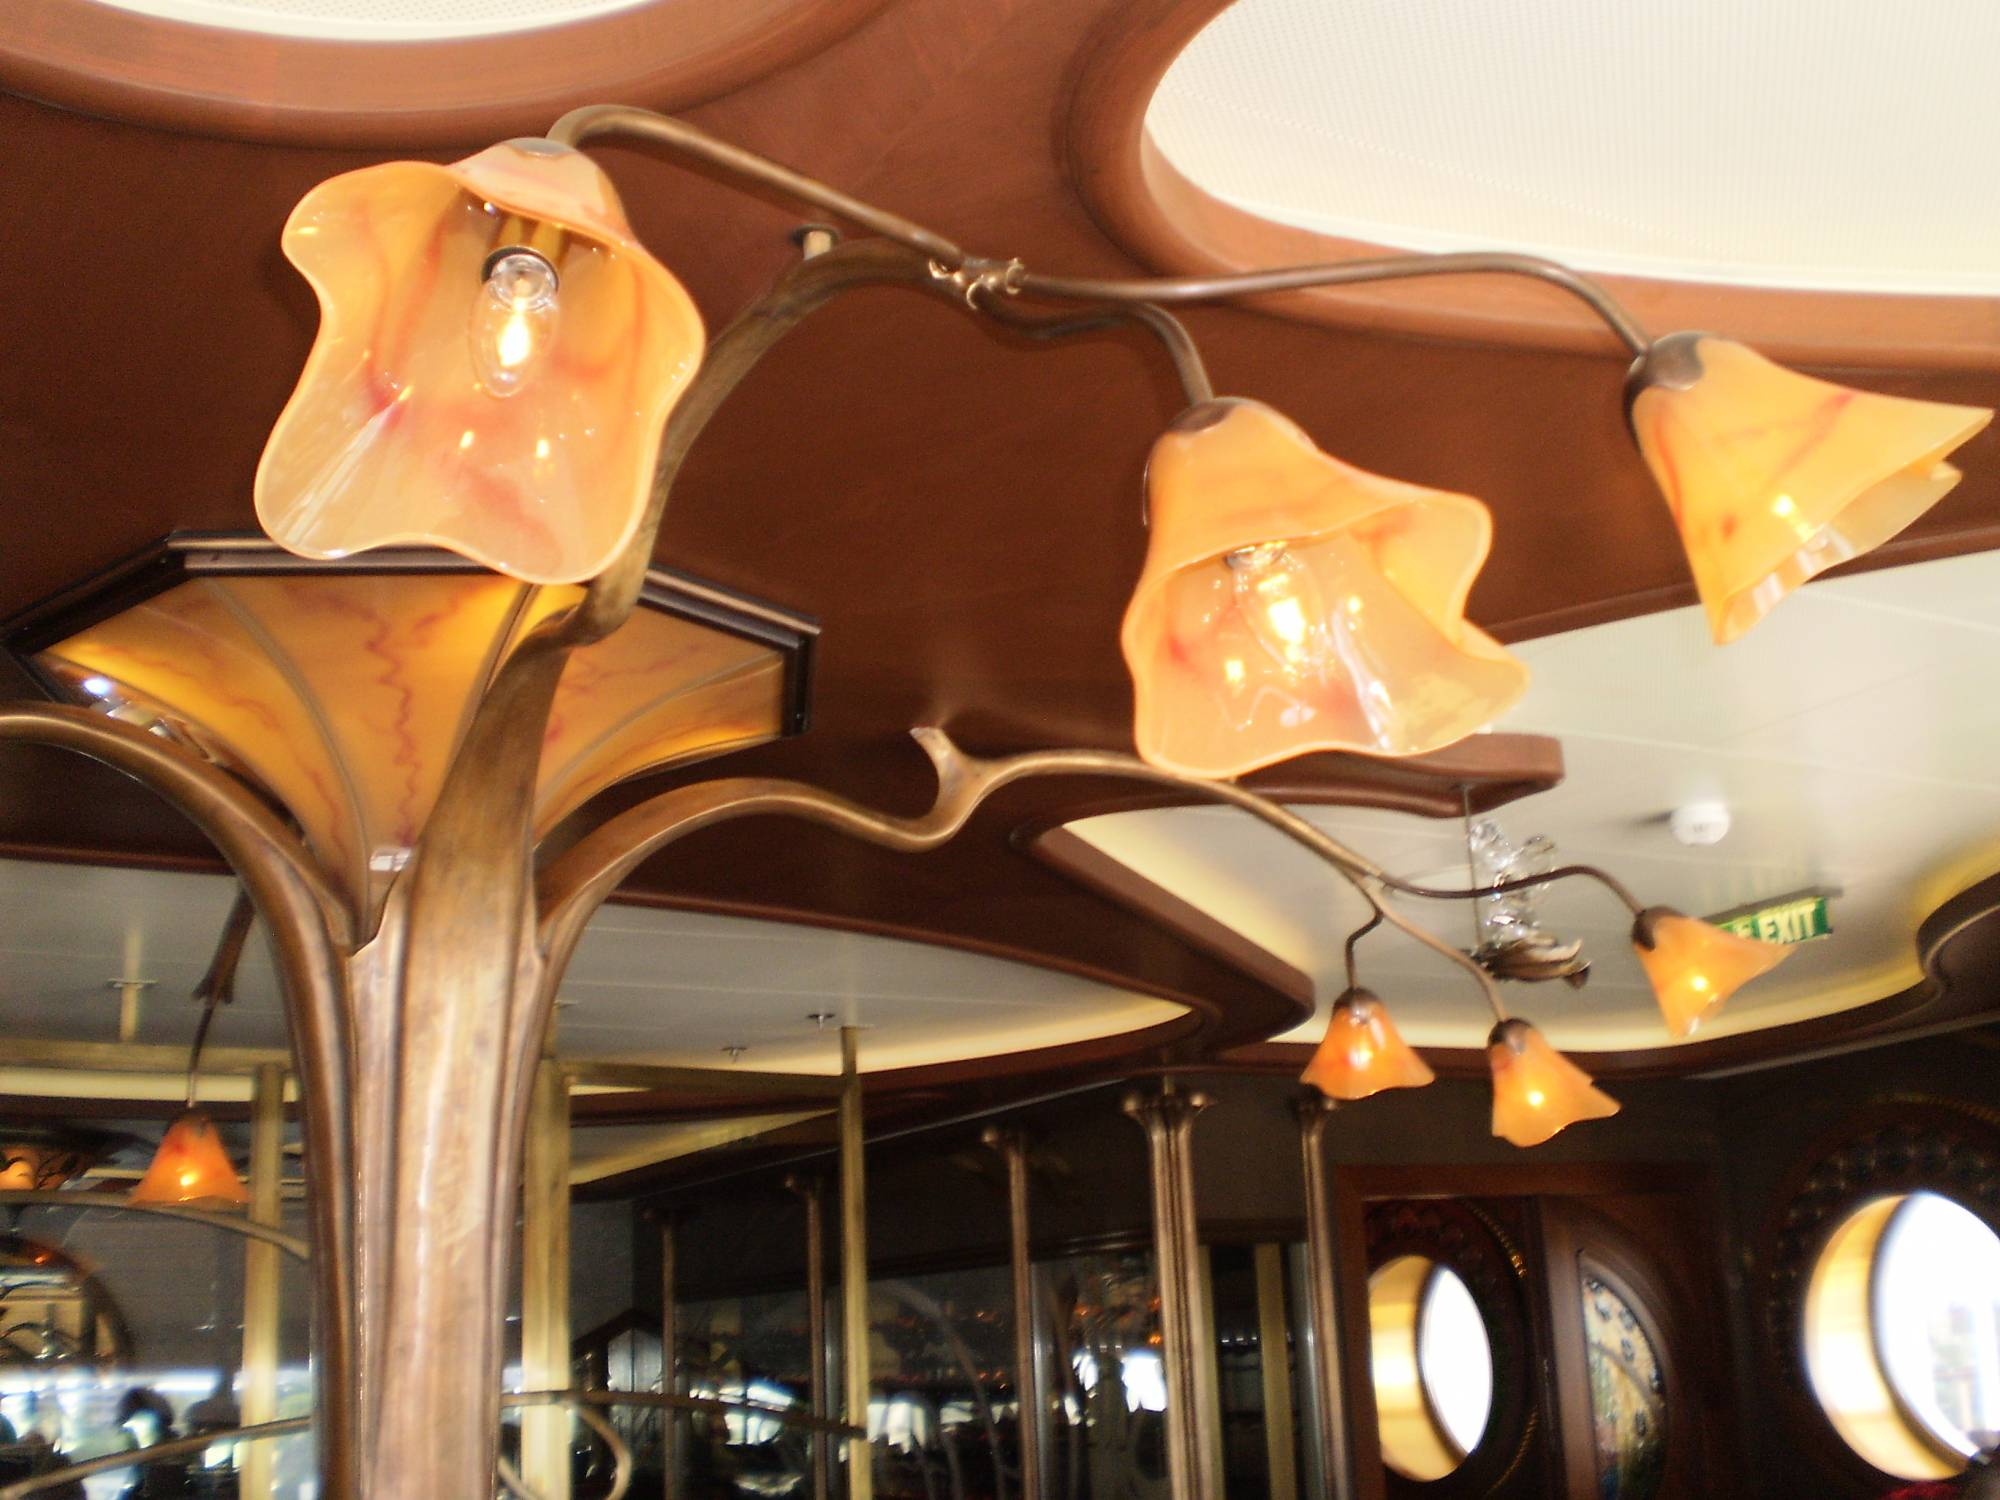 Disney Dream Remy Dining Room chandelier  Lights